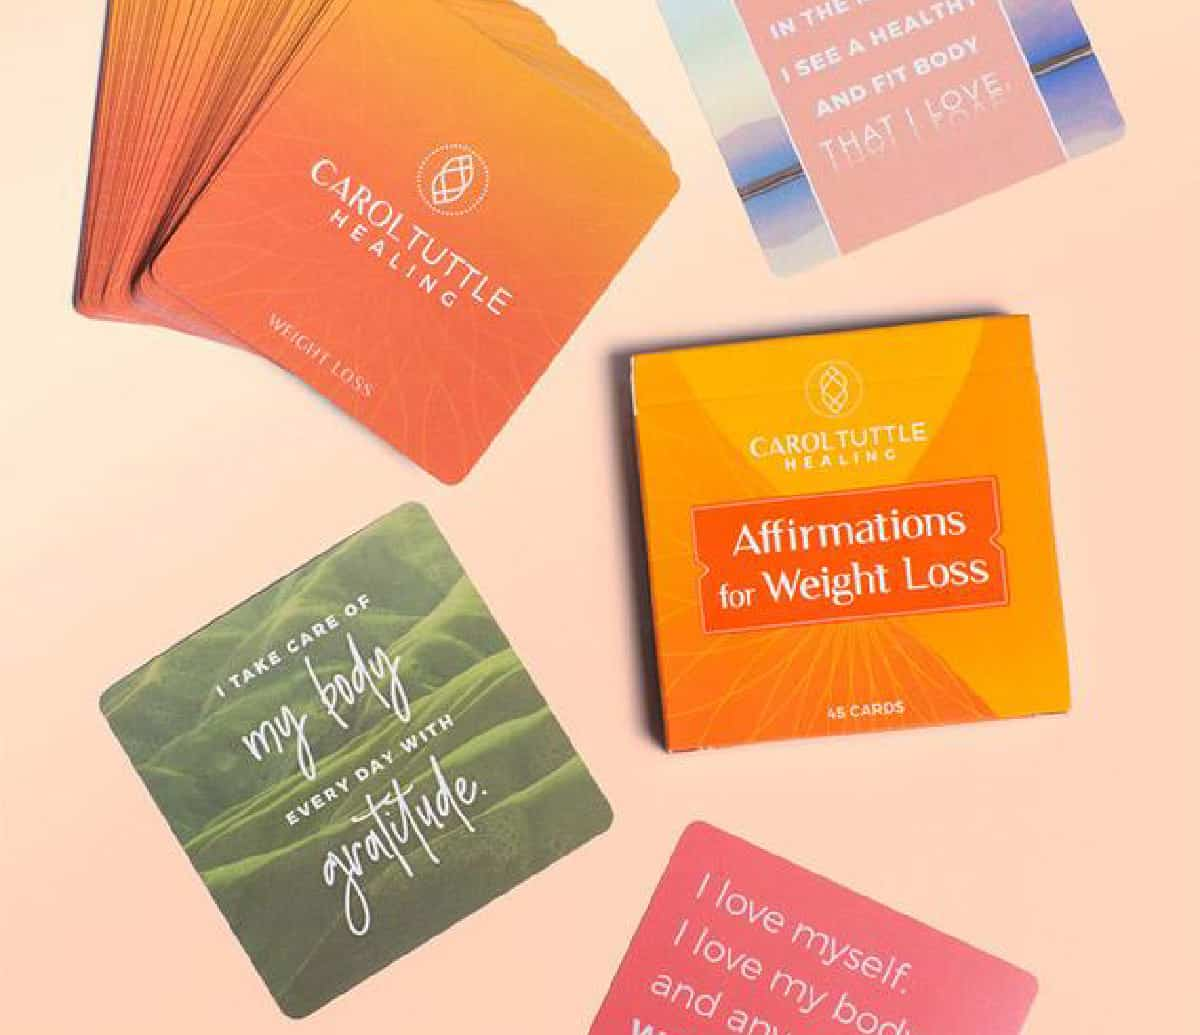 Weight loss affirmation cards from Carol Tuttle scattered on a table